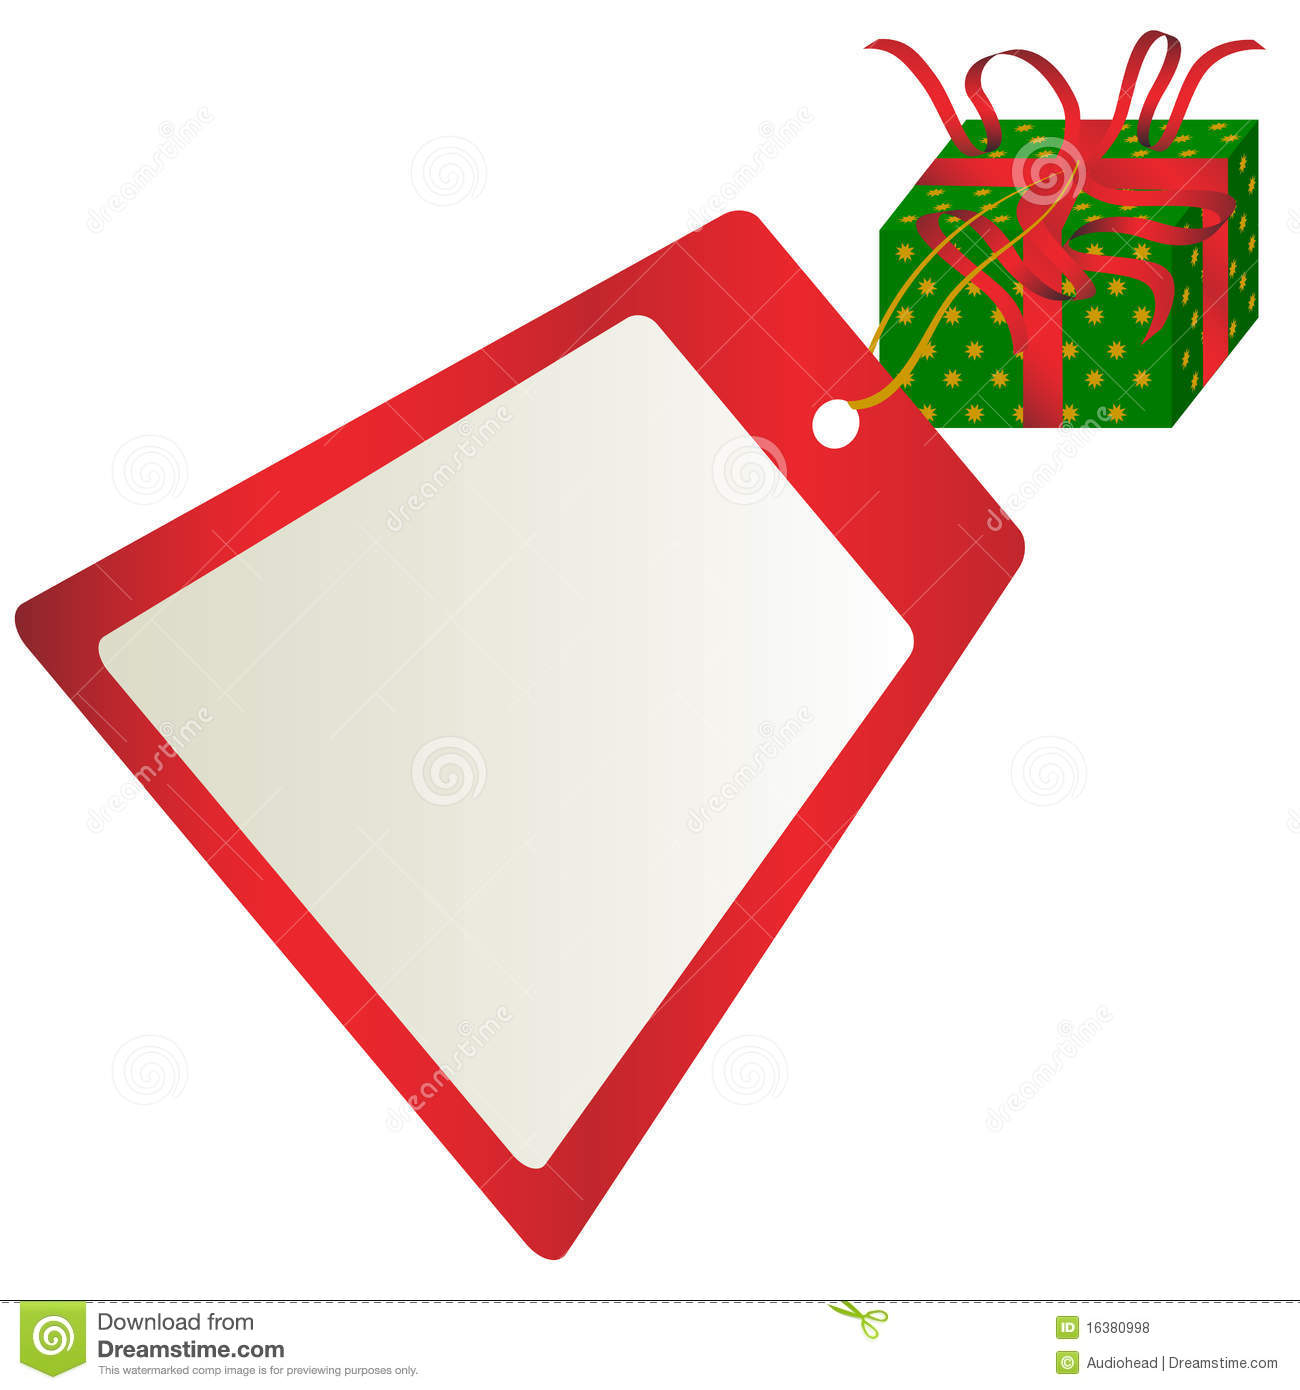 Christmas Gift With Tag With Copyspace on White Background / Vector.